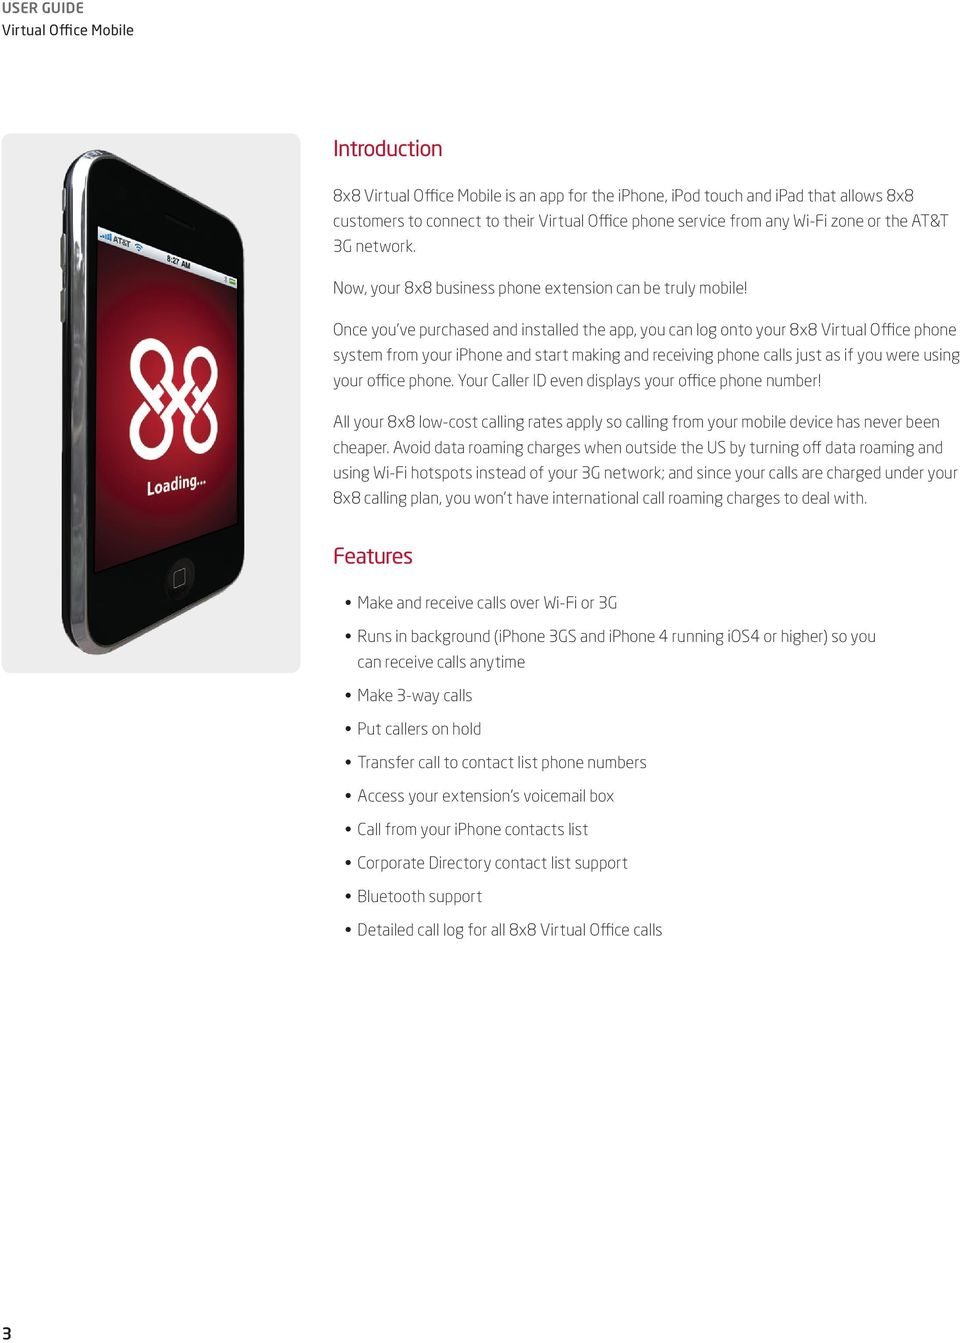 8x8 Virtual Office Mobile User Guide for iphone - PDF